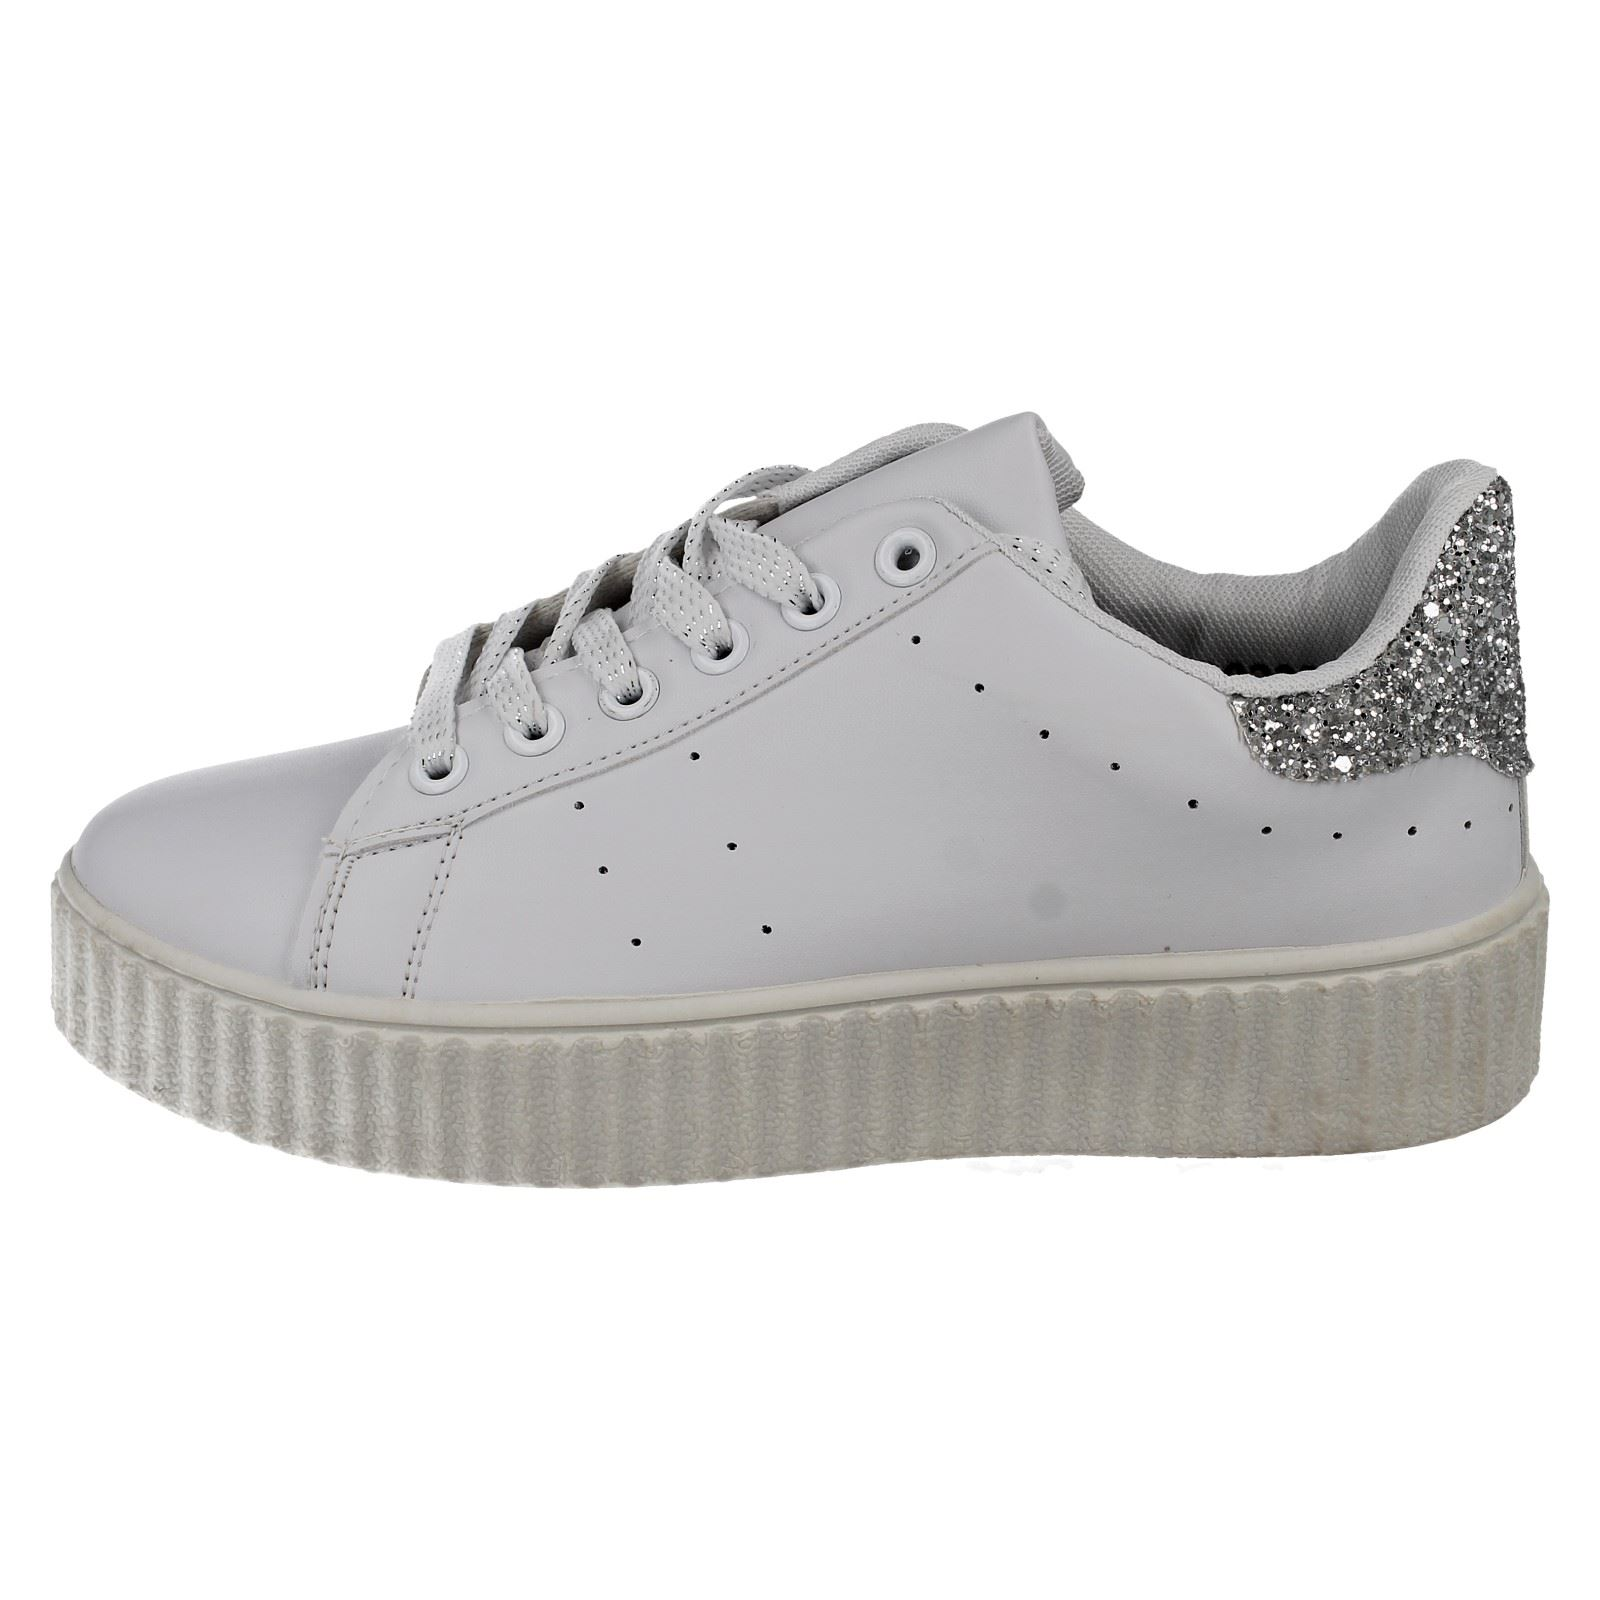 Ladies Spot on Trainers The Style - F8R0222